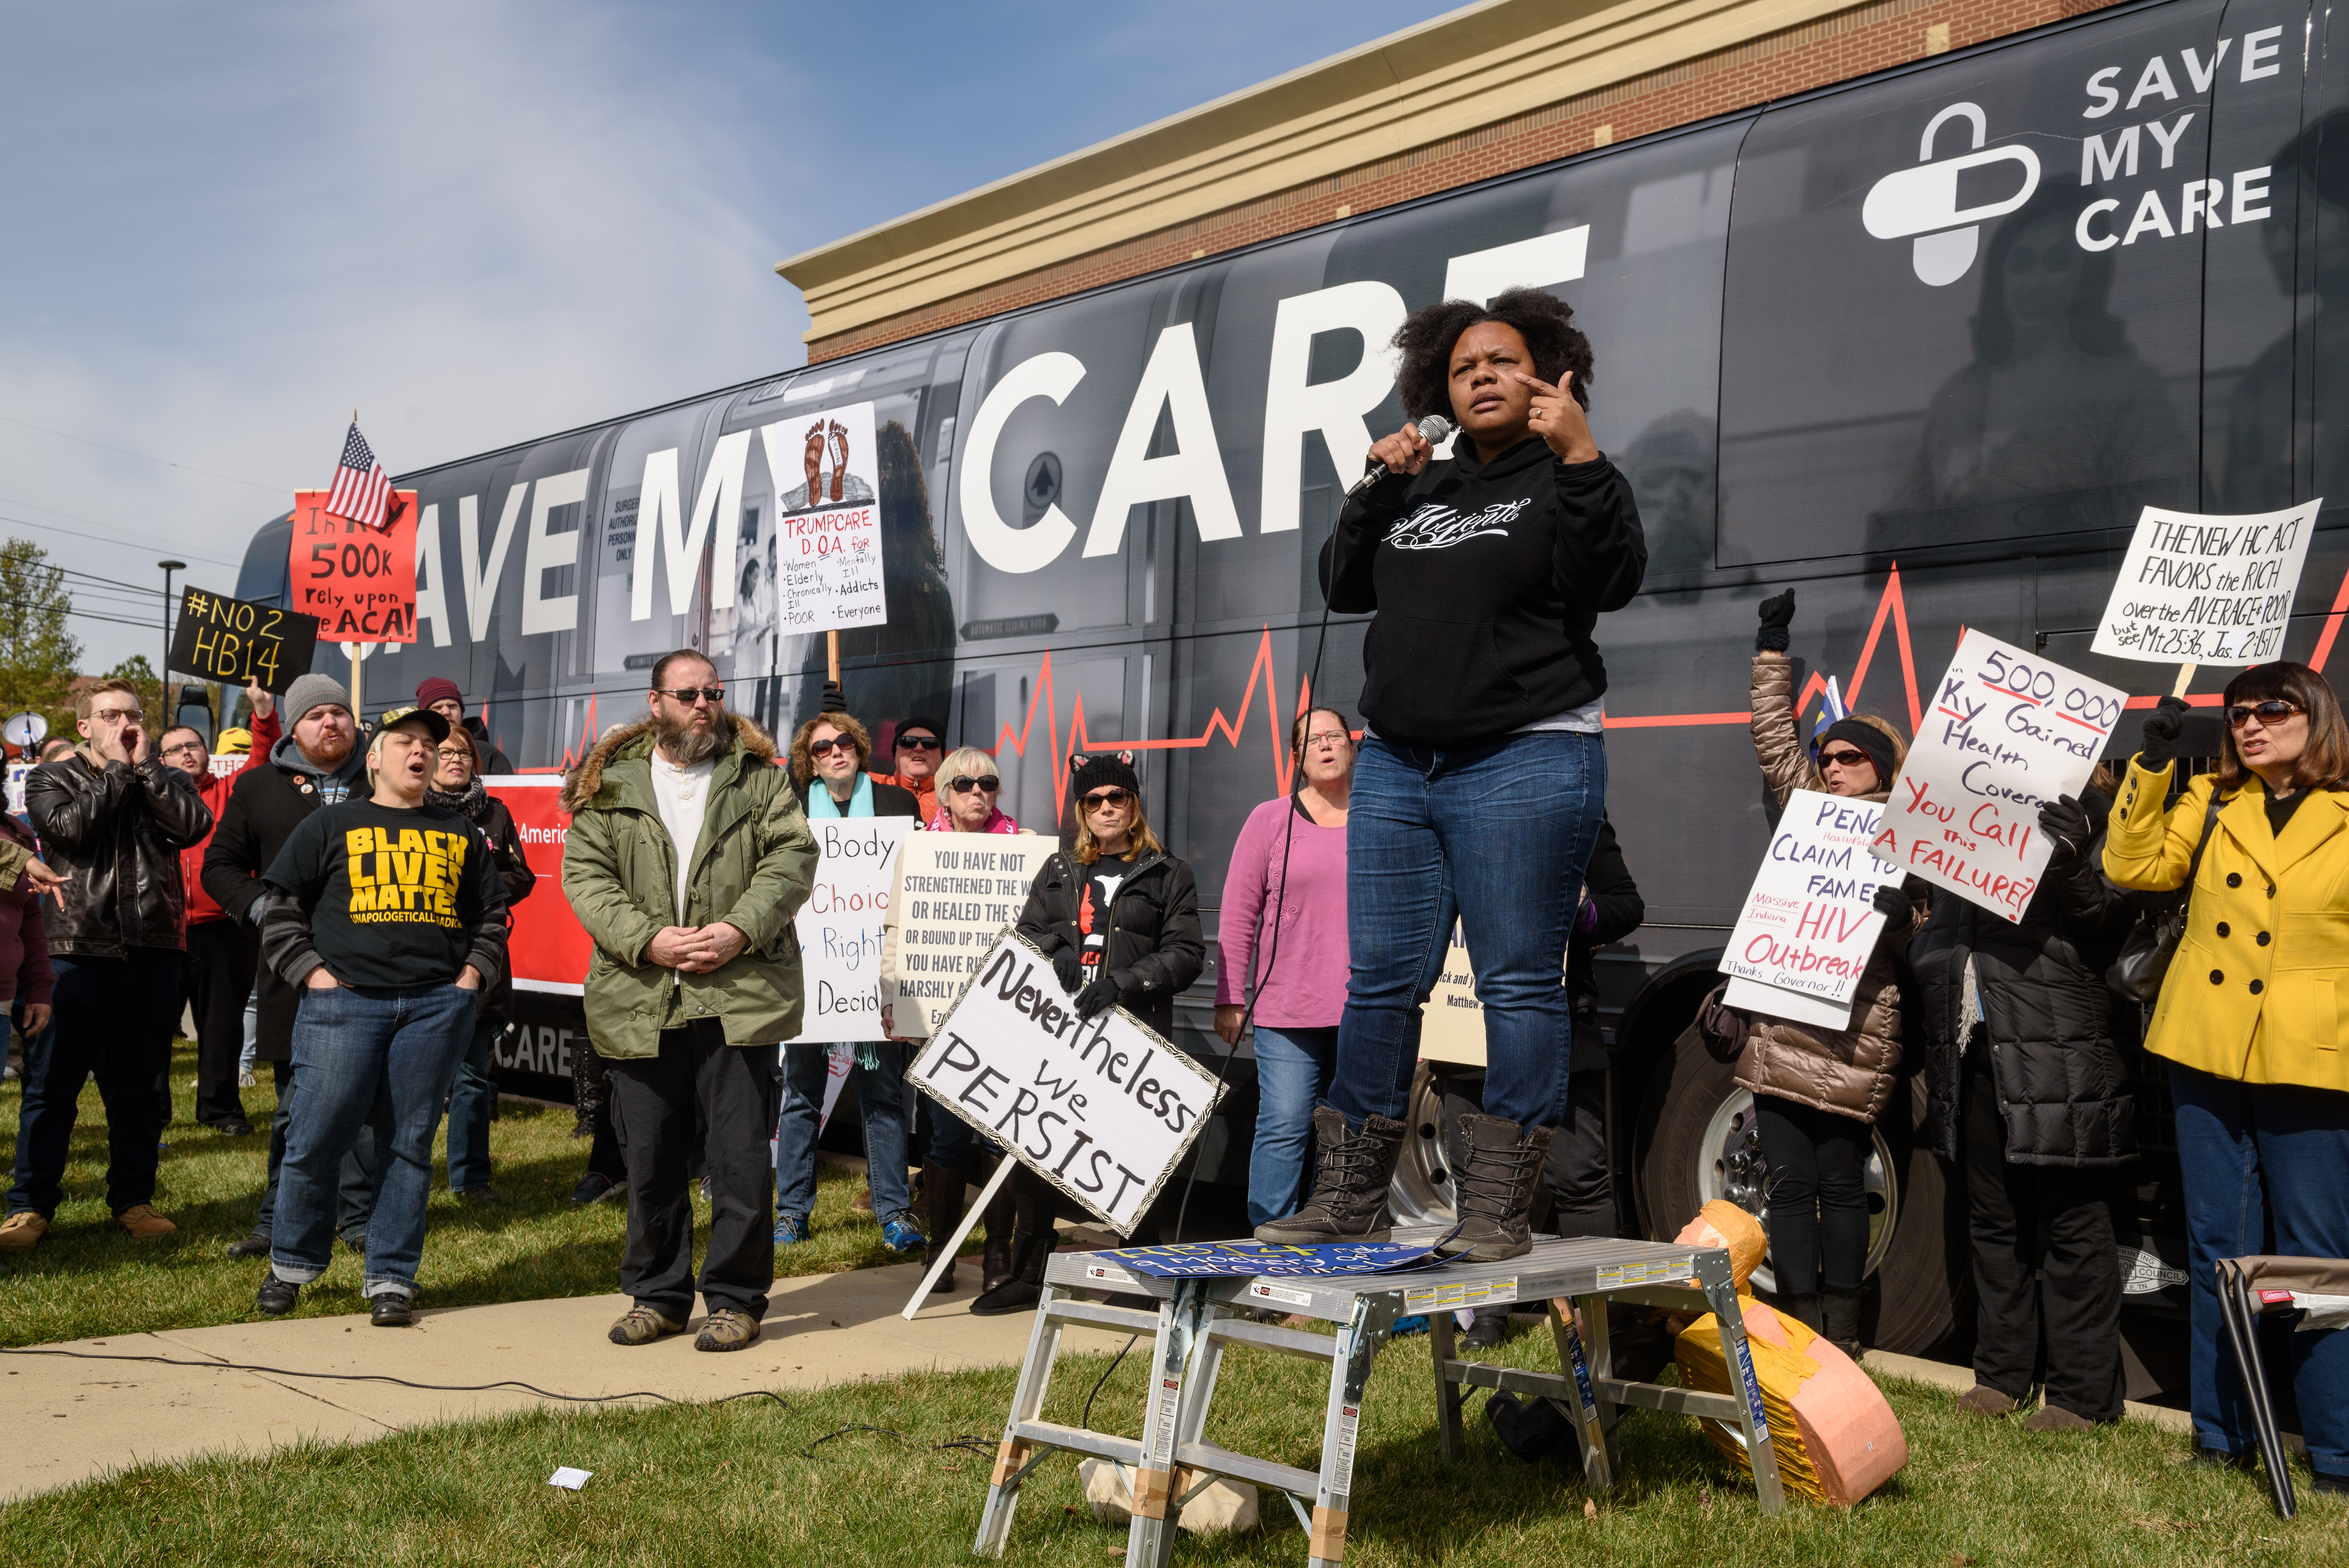 Chanelle Helm, a Black Lives Matter of Louisville organizer, delivers her message to protesters gathered in front of Indivisible Kentucky's Save My Care Bus.